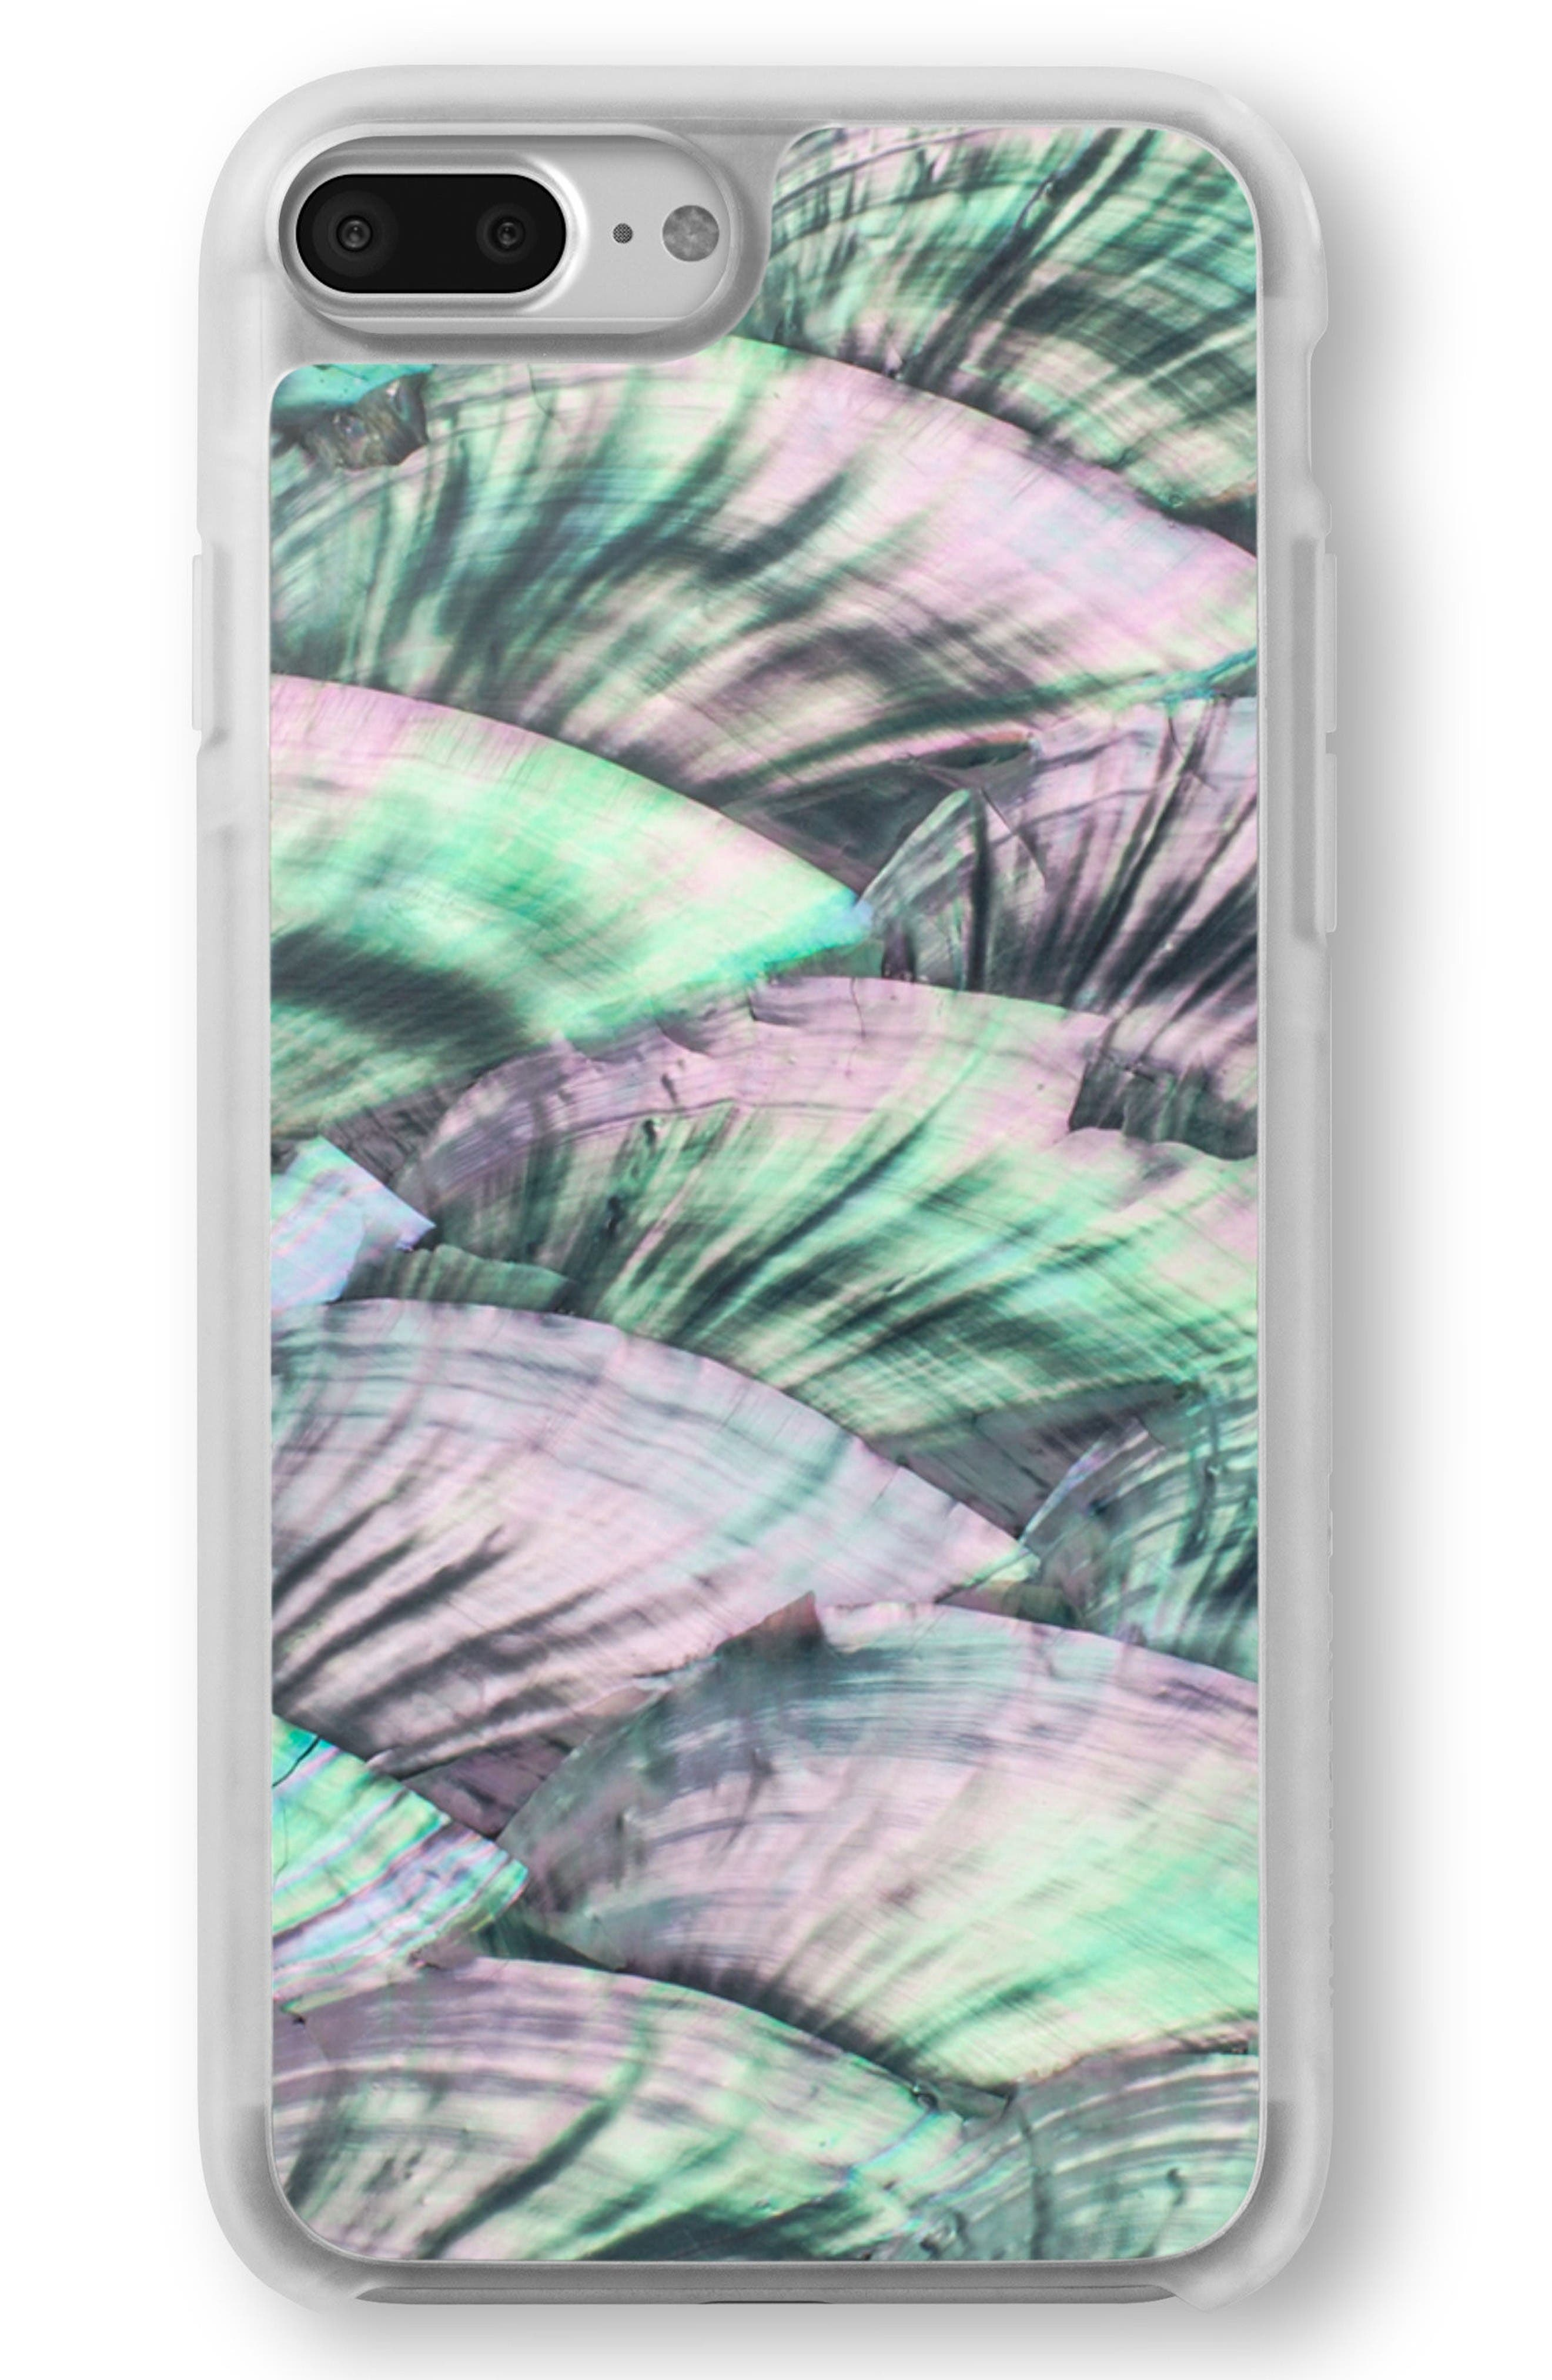 Main Image - Recover Green Abalone iPhone 6/6s/7/8 & 6/6s/7/8 Plus Case